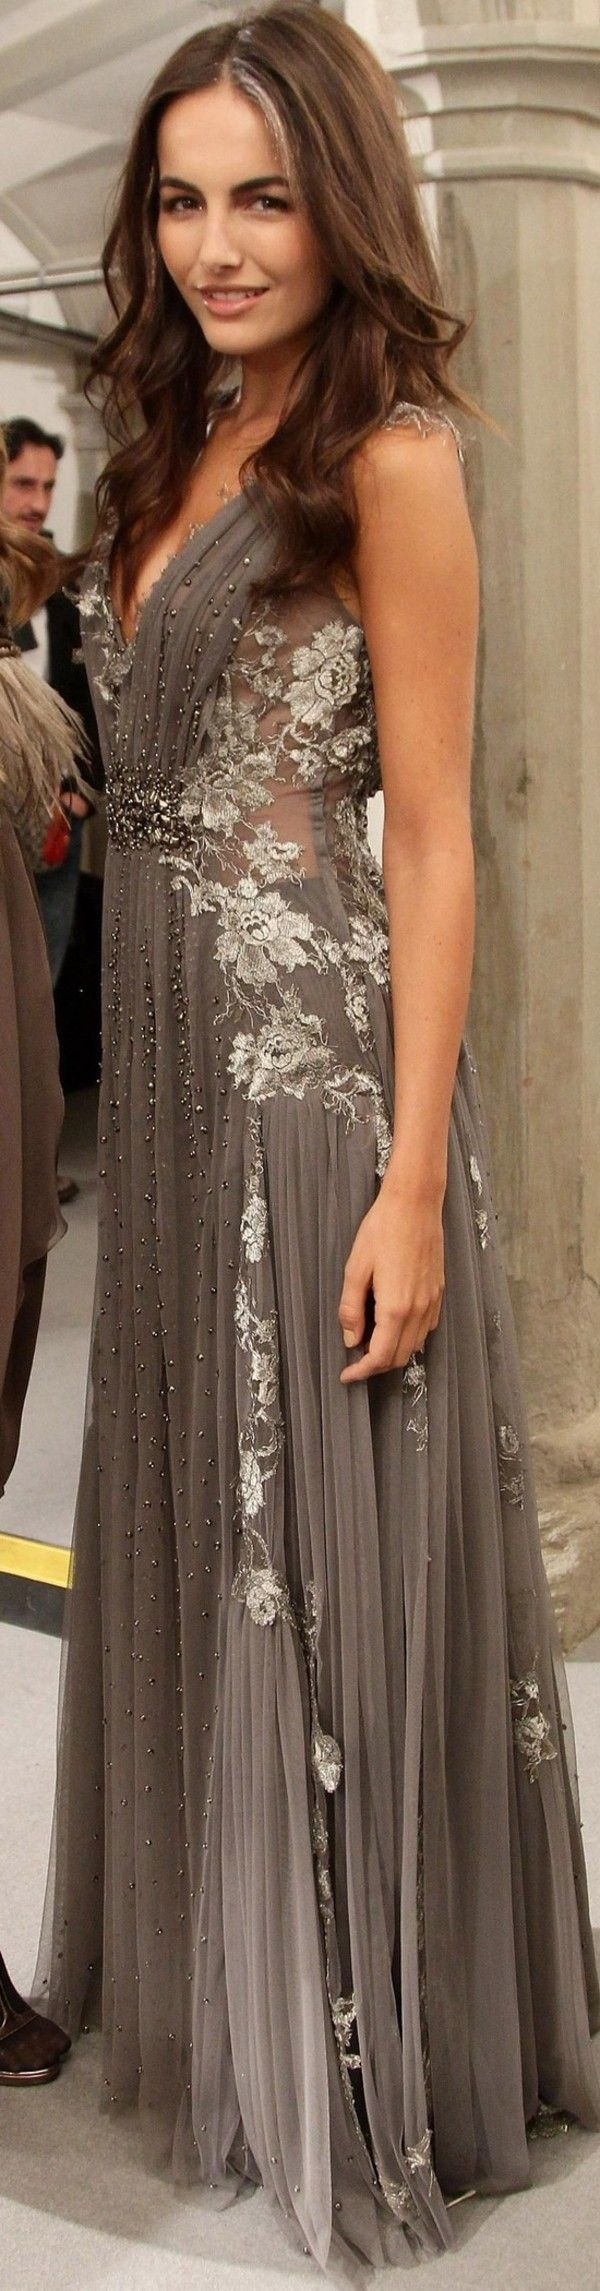 Grey gown - Alberta Ferretti I don't care for the see through